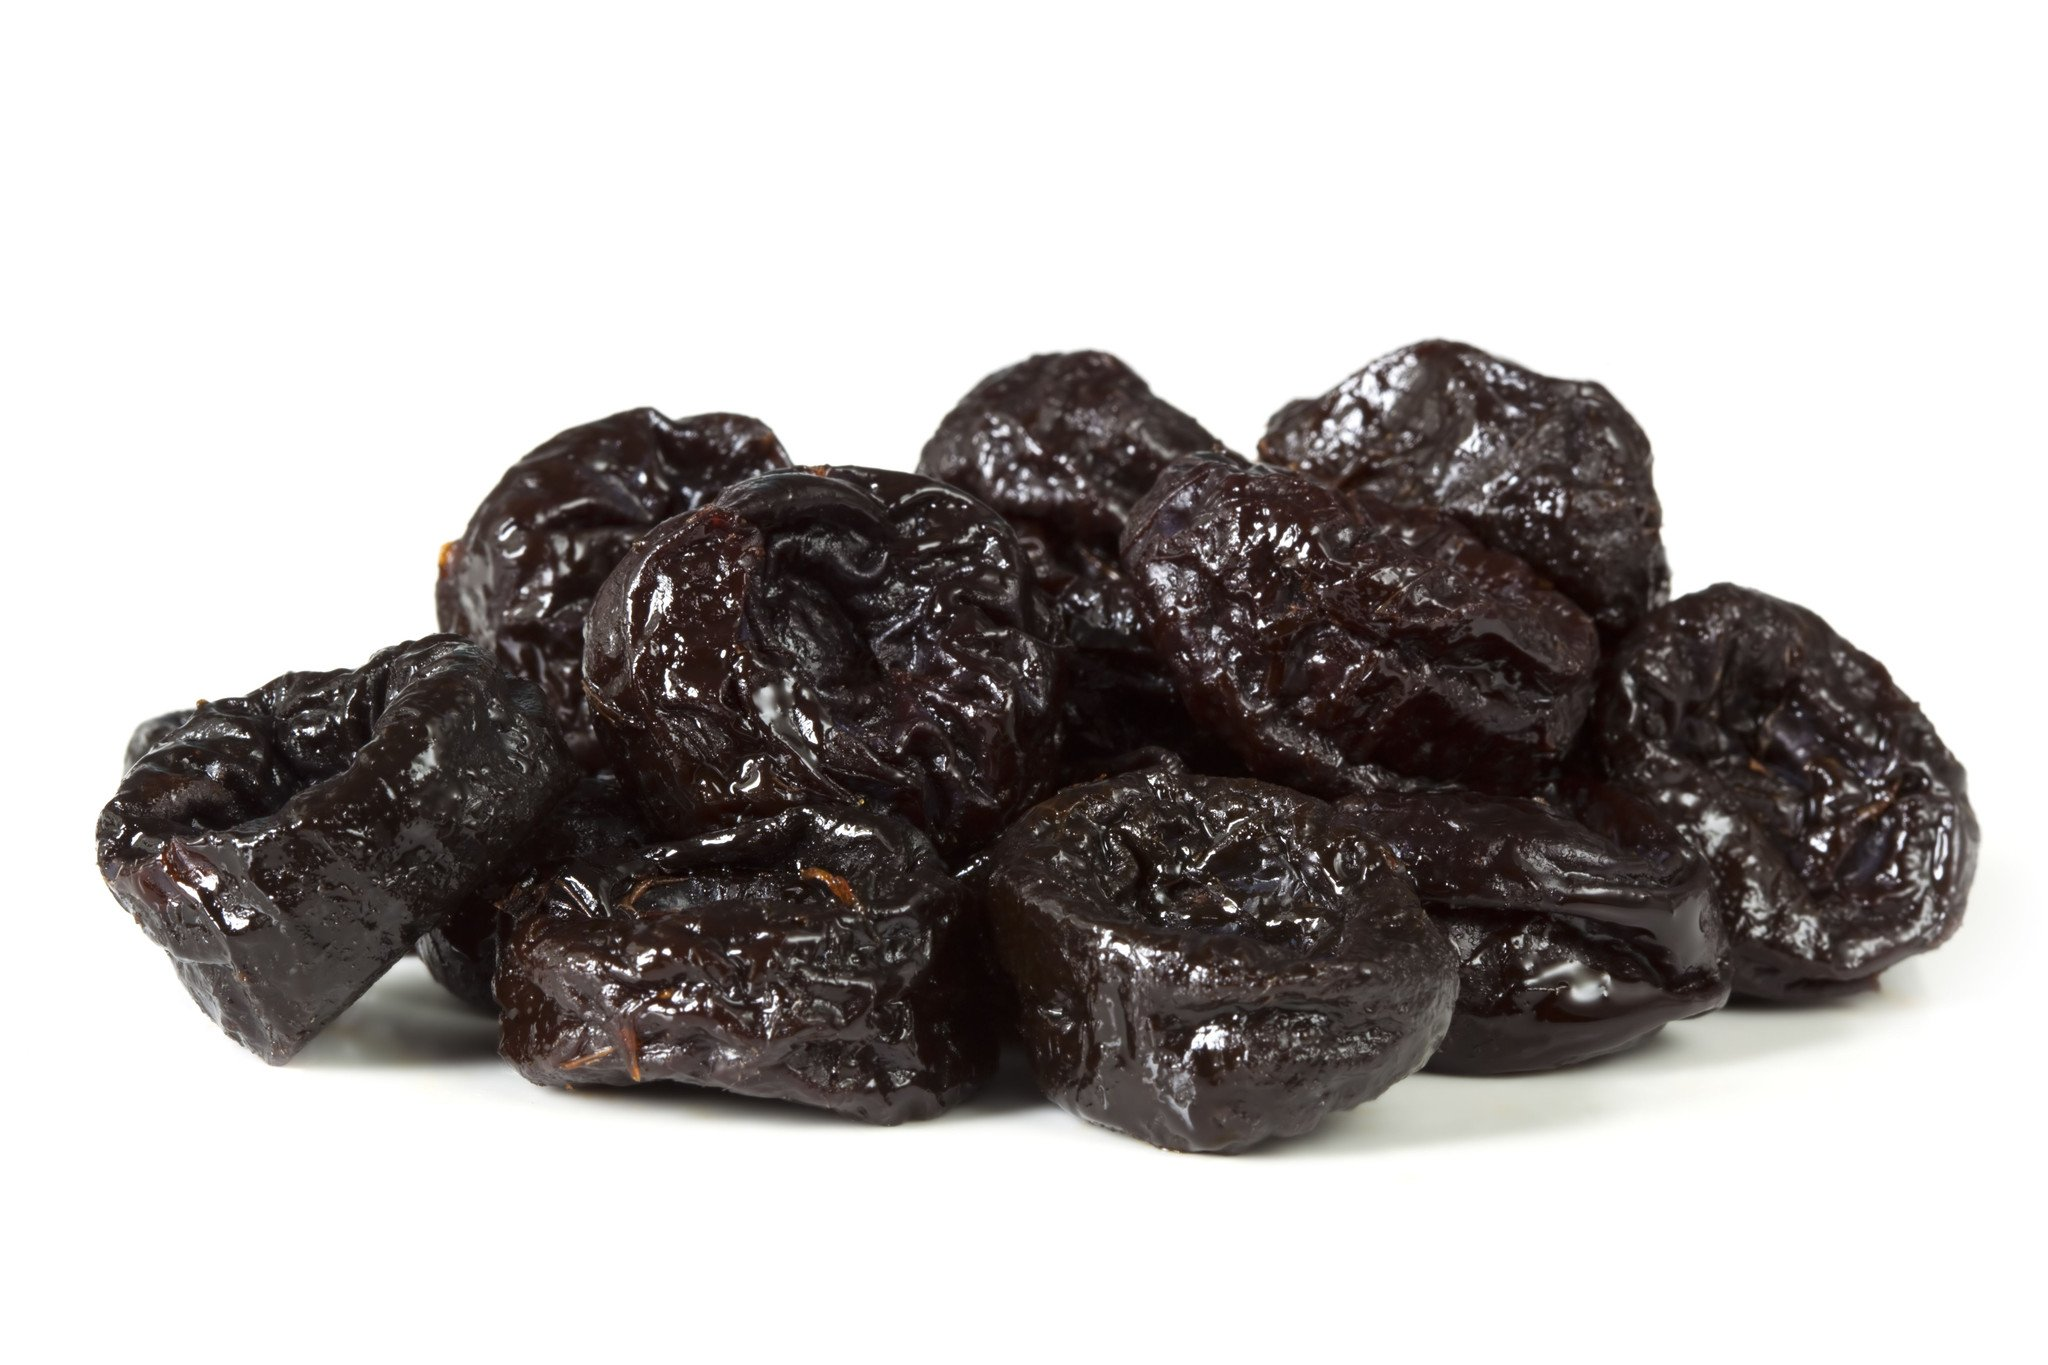 Anna and Sarah Prunes Pitted in Resealable Bag, 1 Lb